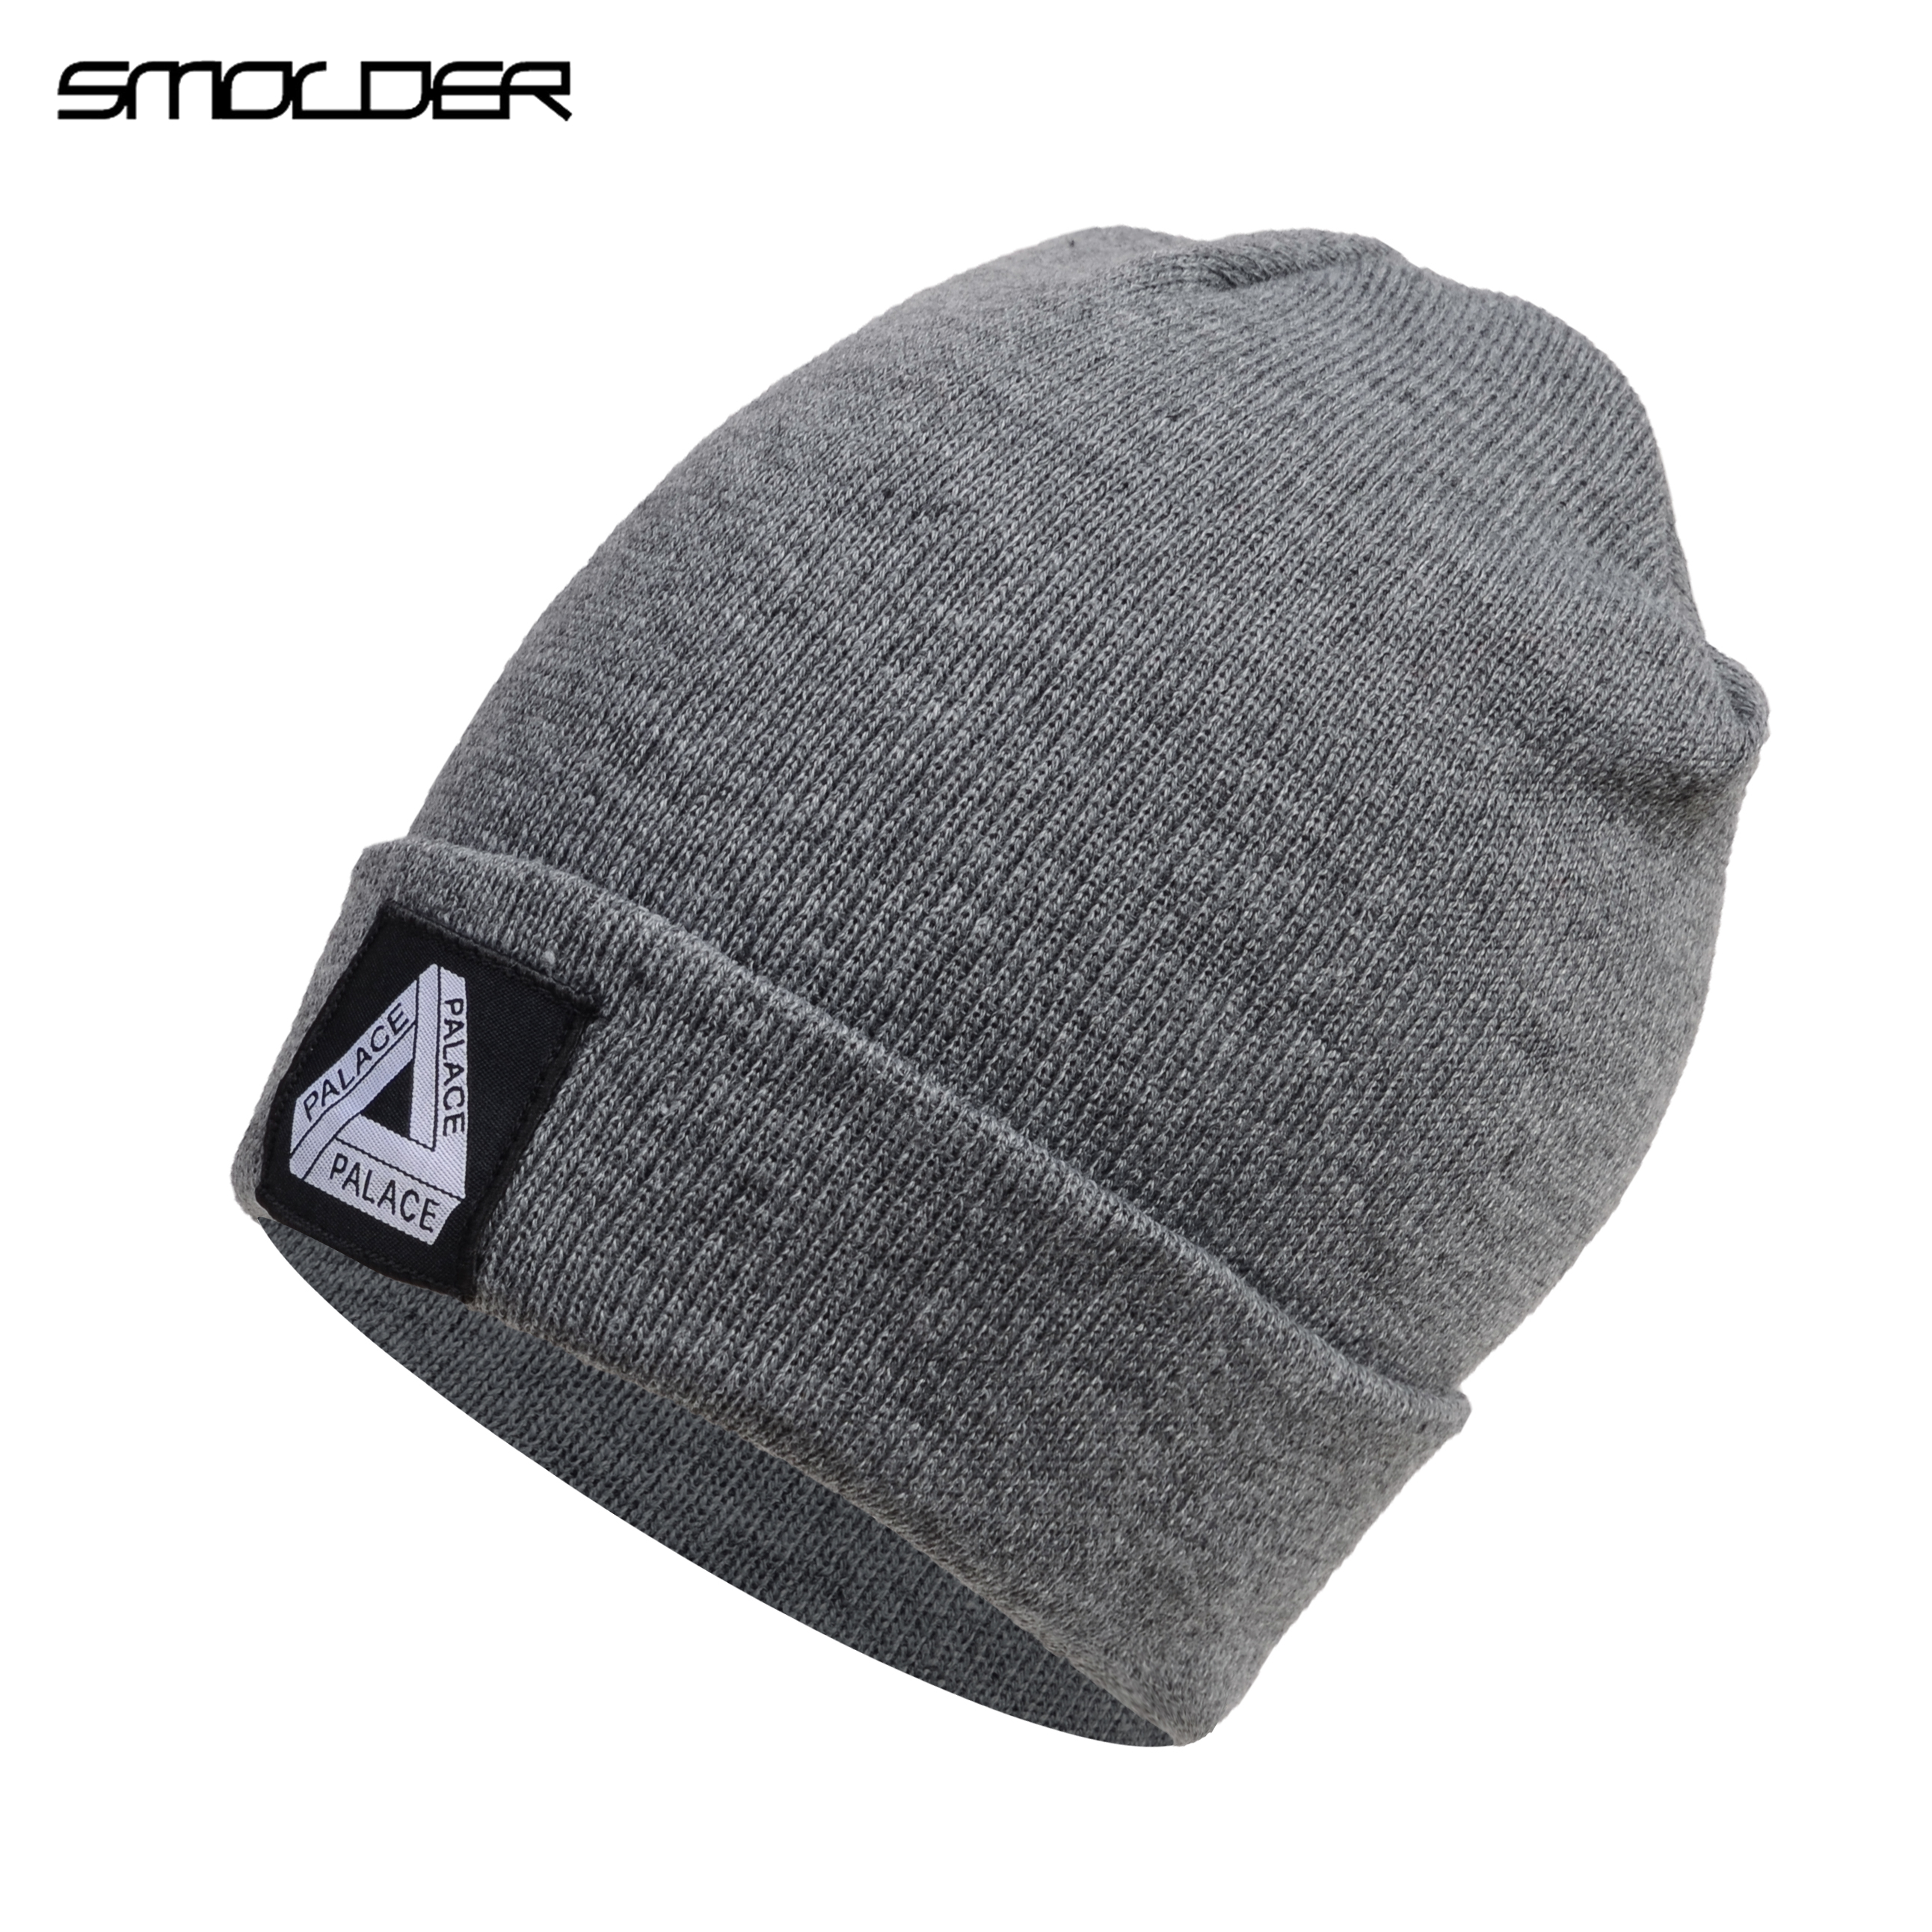 [SMOLDER]Wash Label   Beanie   Hat Autumn Outdoor Keep Warm Knit   Beanie   Hat Cuff   Beanie   Watch Cap Winter Skull Hats for Men Women